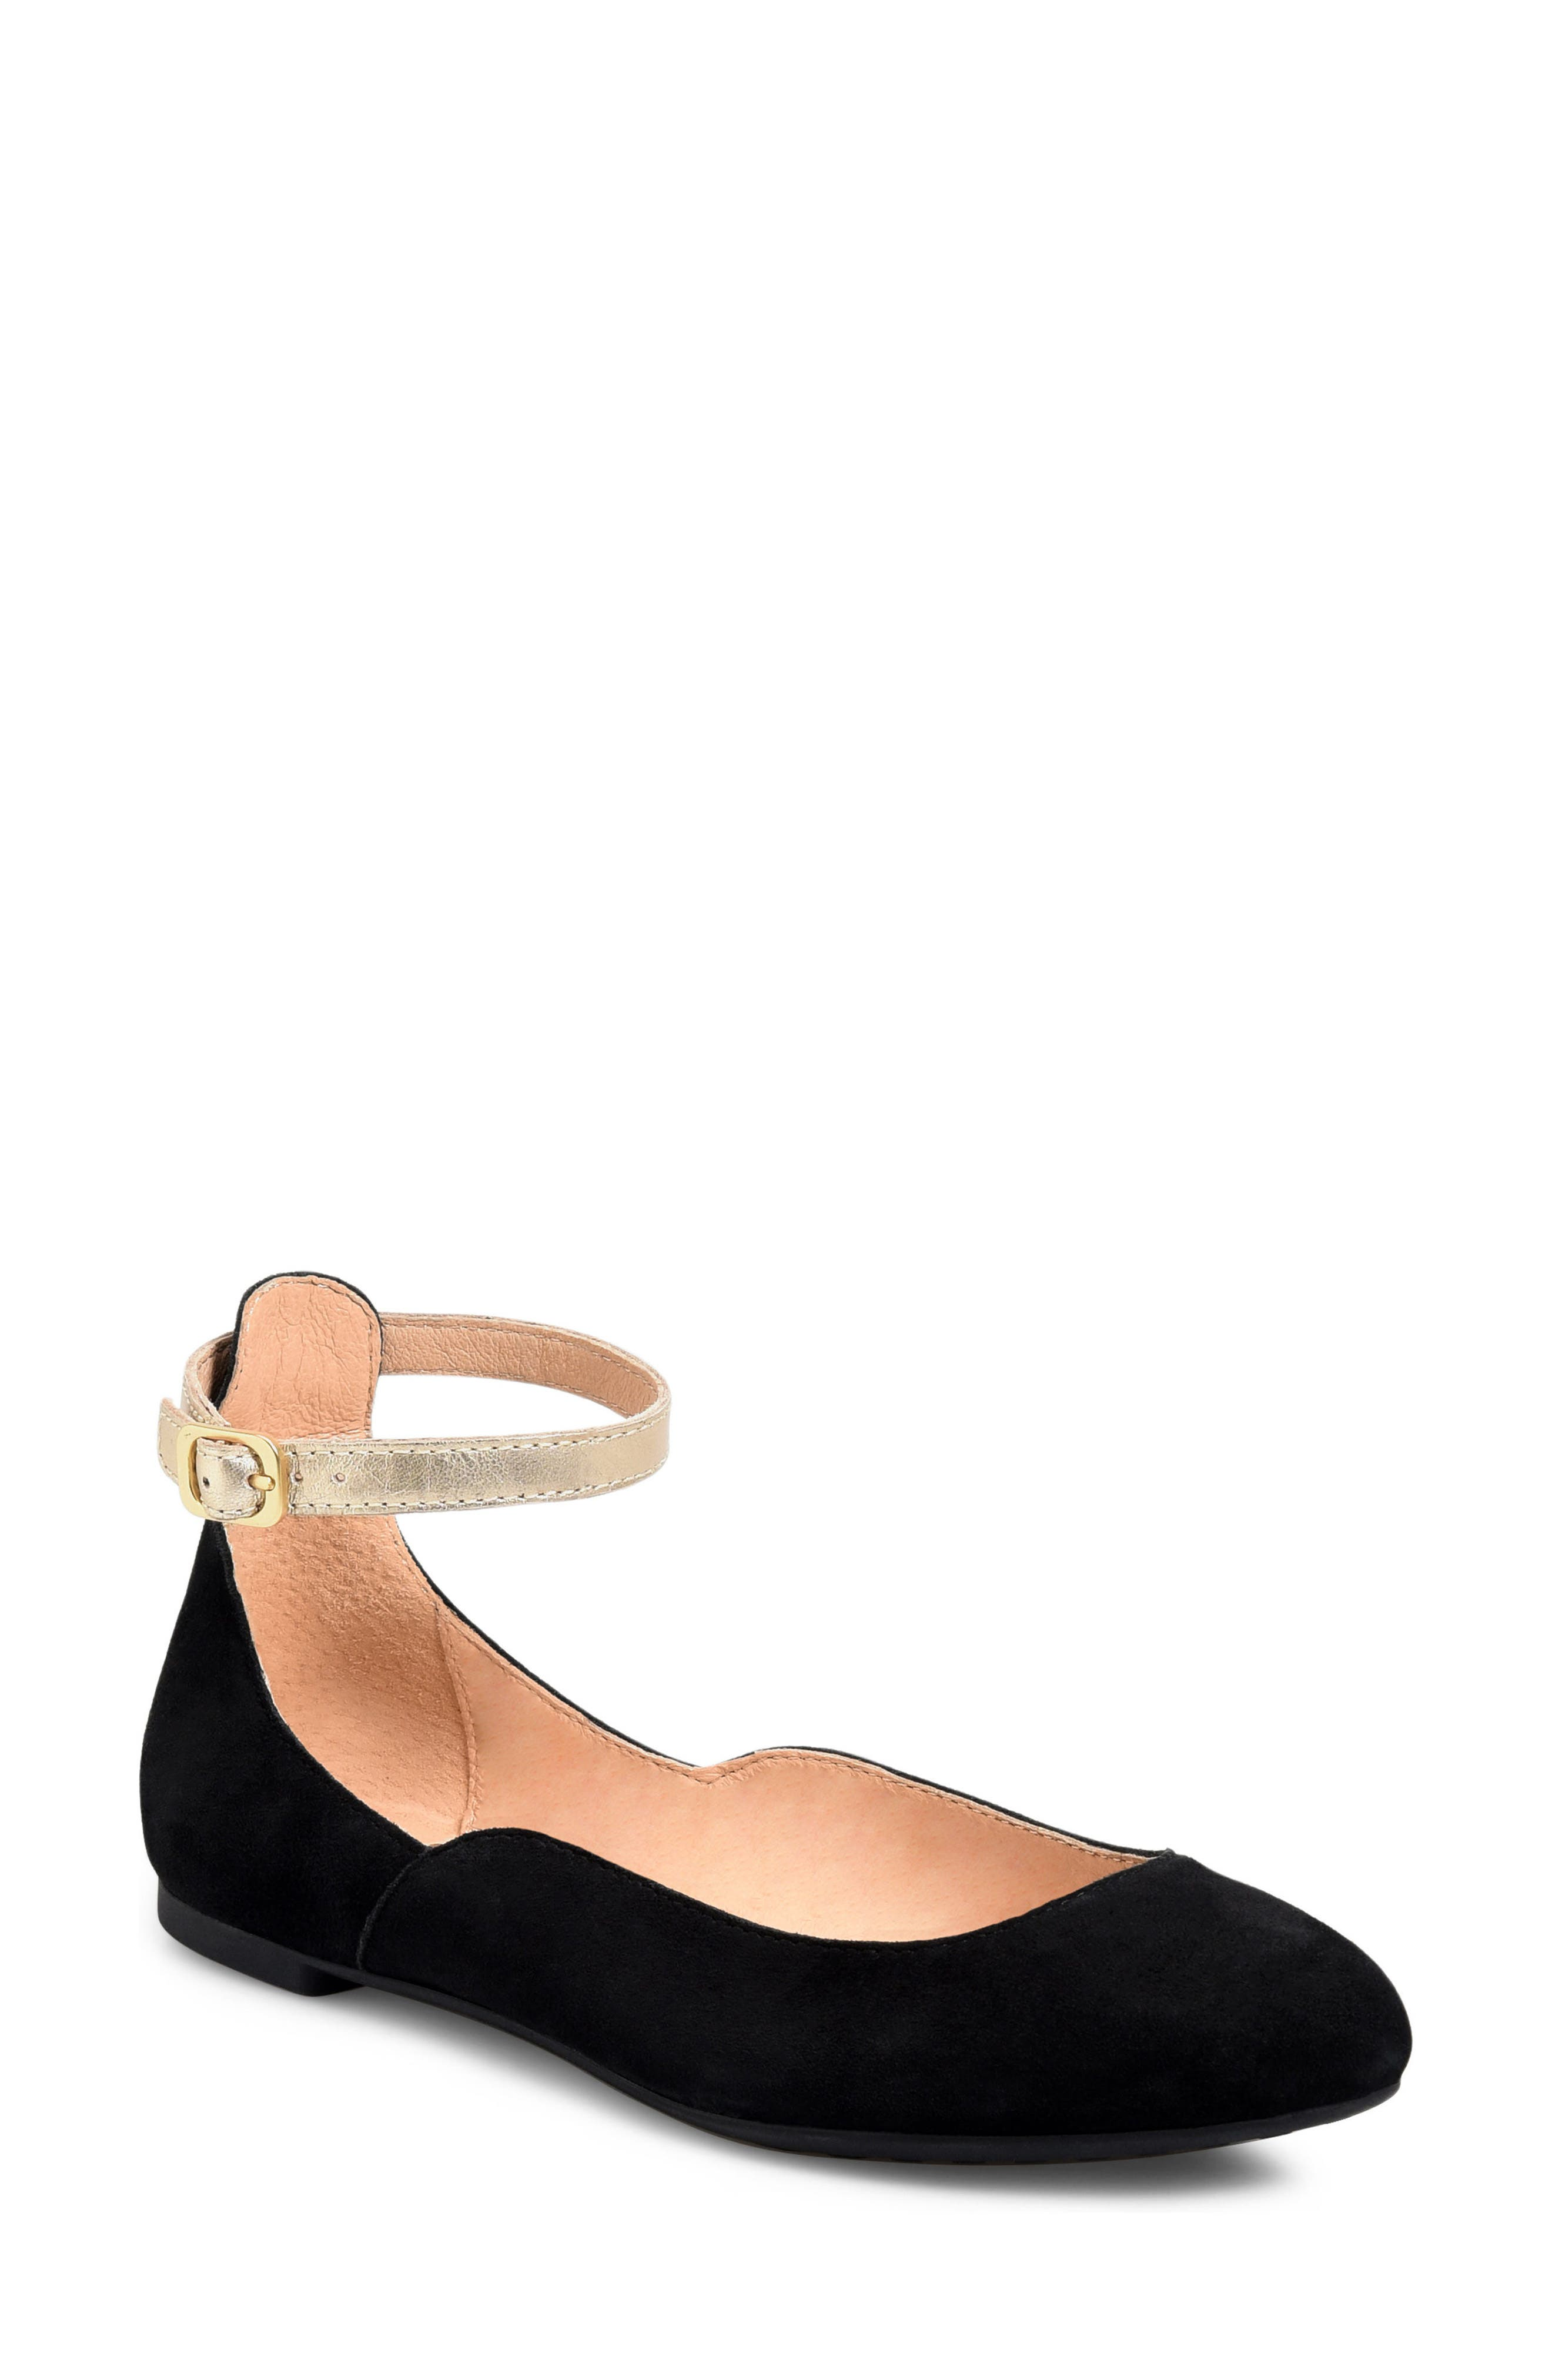 Luchia Ankle Strap Flat,                         Main,                         color, BLACK/ GOLD LEATHER